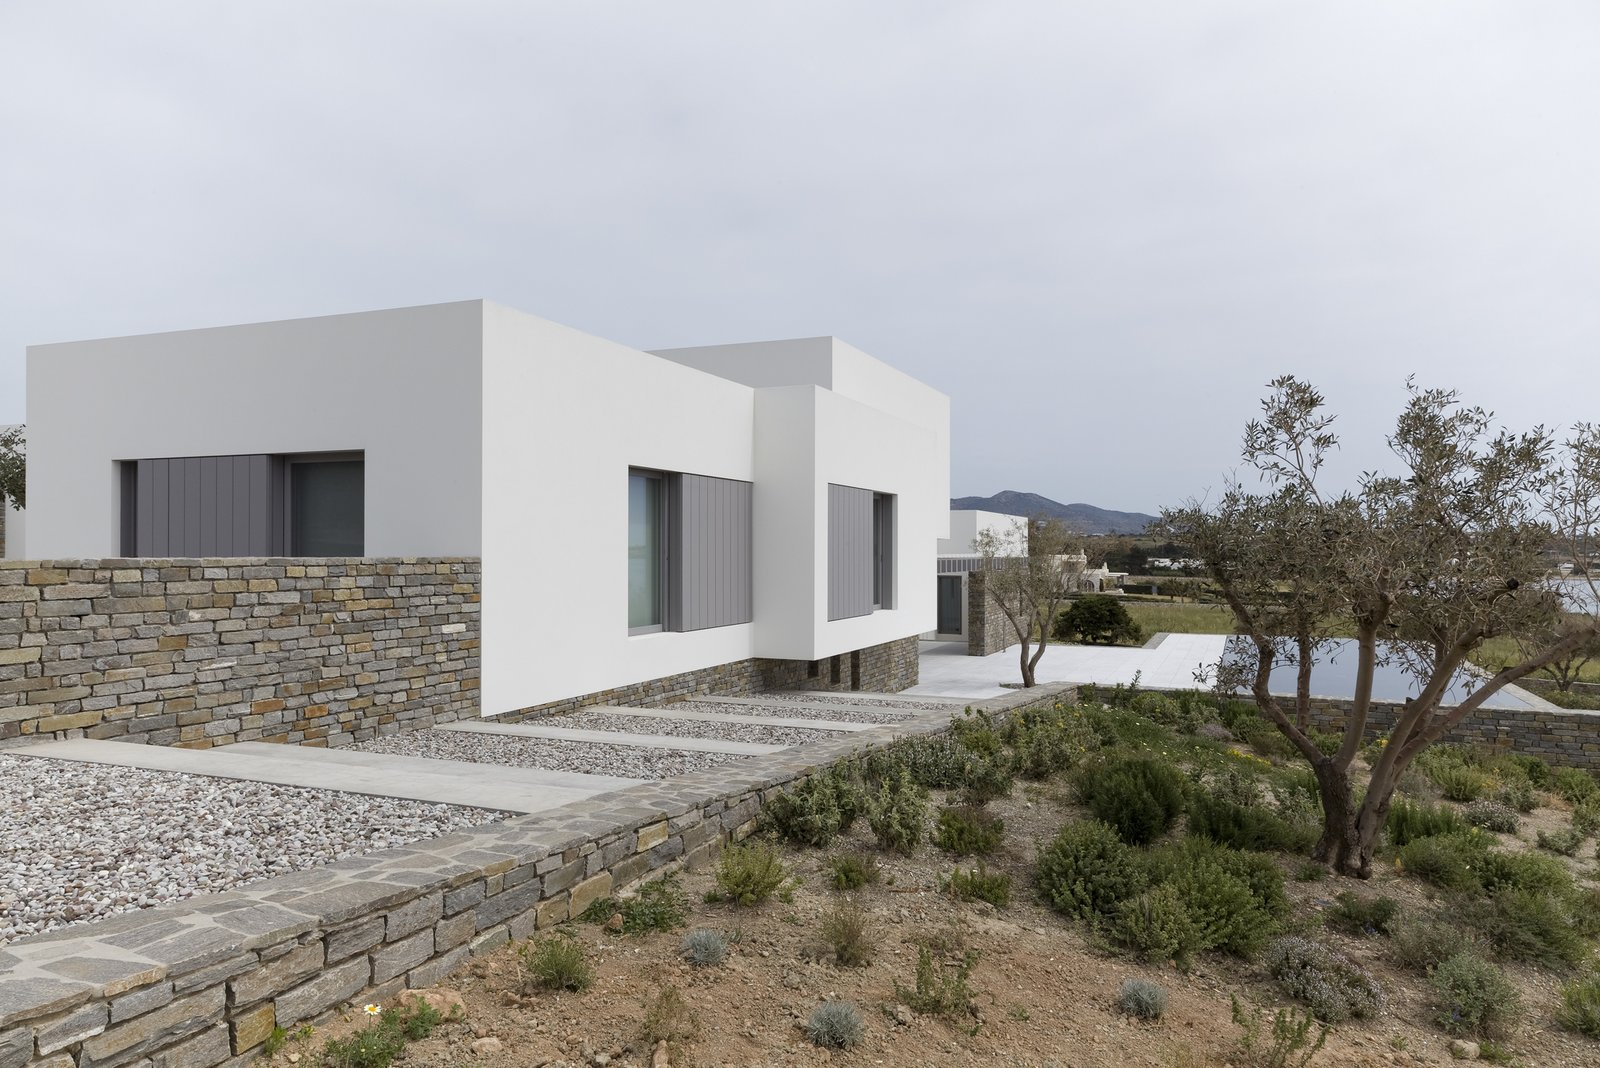 Photo 7 of 11 in 10 Bright White Cubist Homes Across the Globe from Paros House by John Pawson